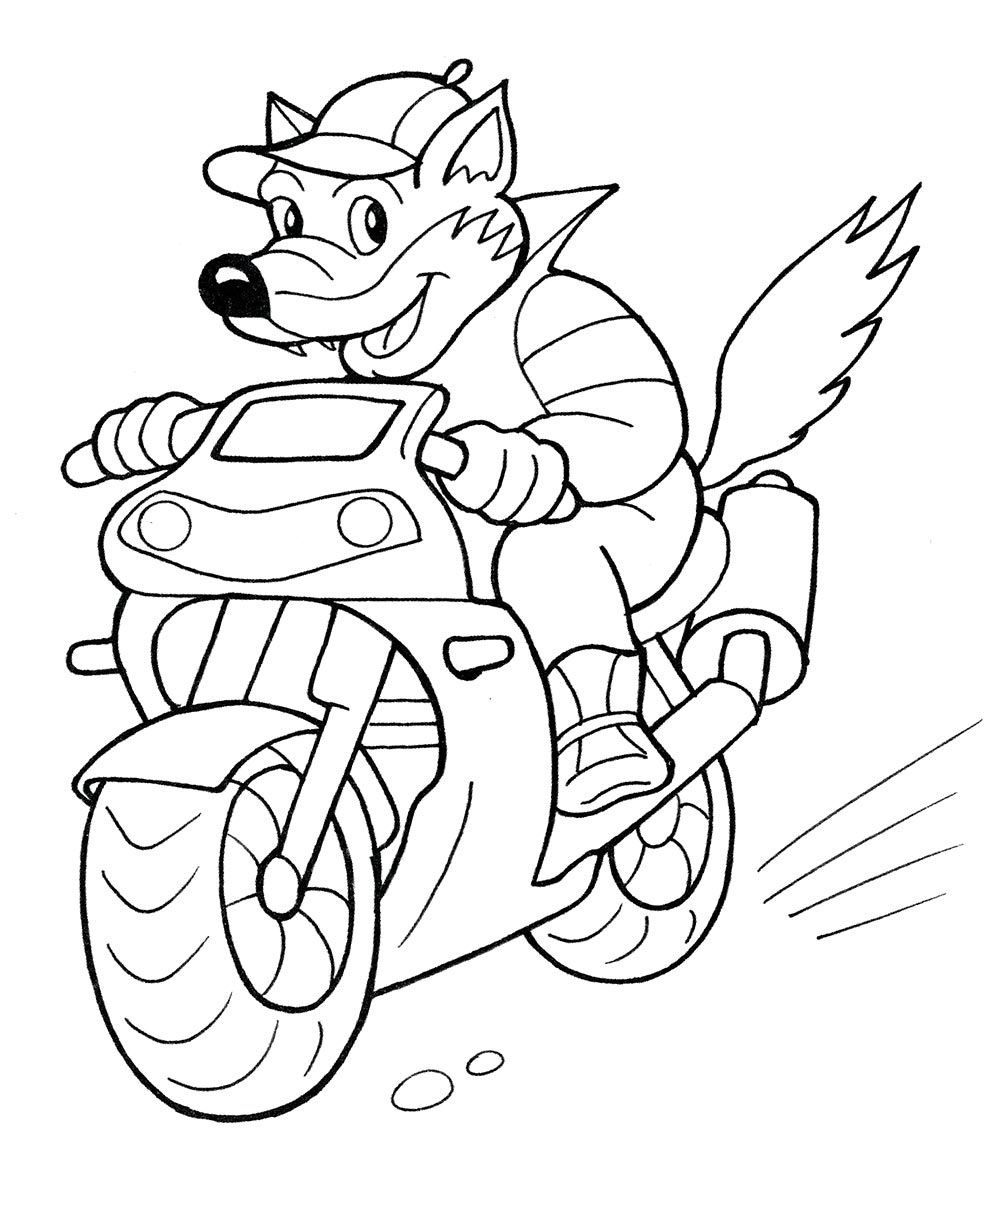 Coloring pages for children 78 years to download and